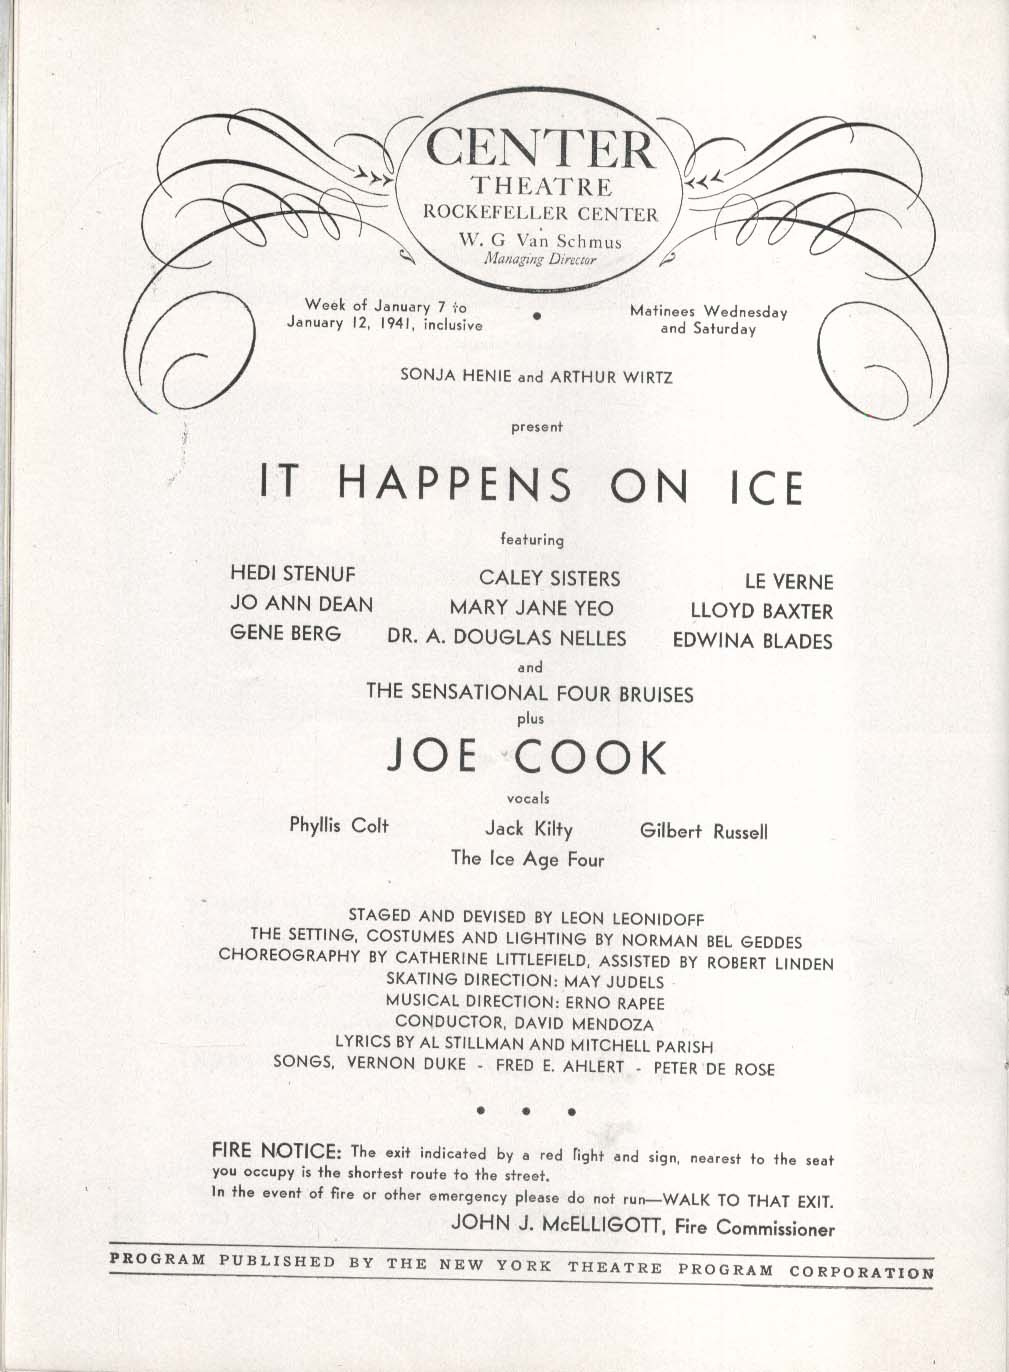 It Happens on Ice Rockefeller Center Theatre program Sonja Henie 1941